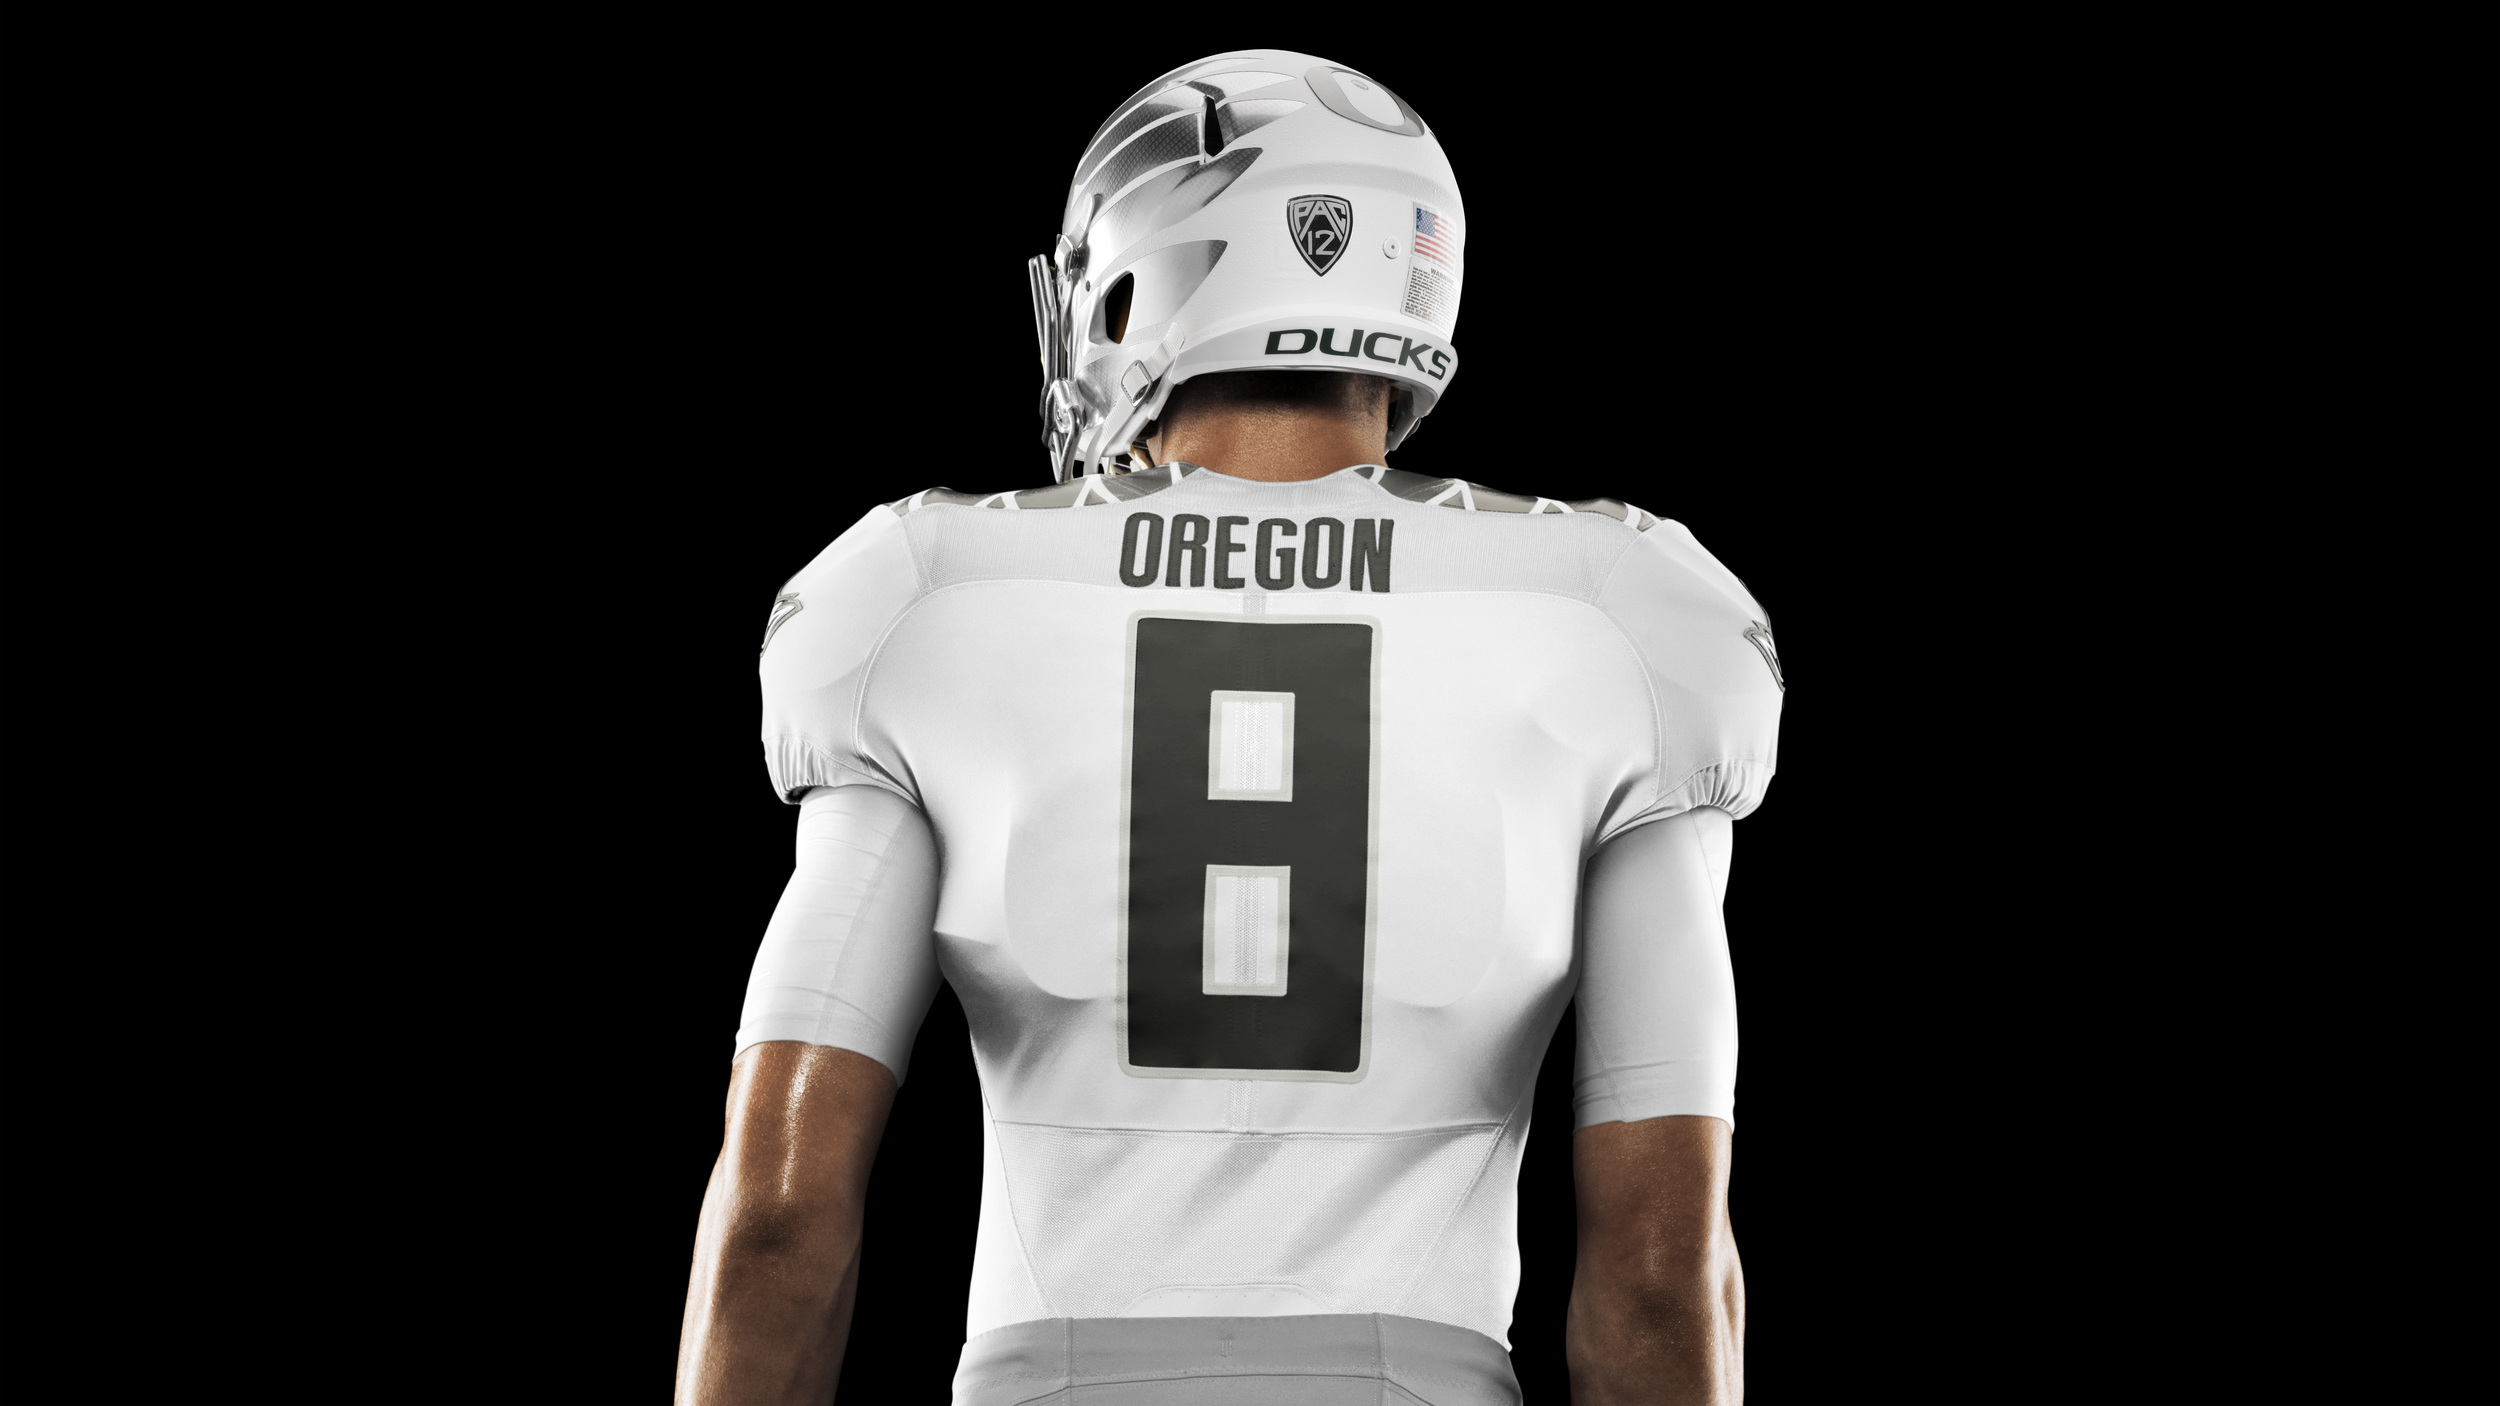 HO14_NFB_NCAA_Oregon_Uniform_439_V2_crop_1_HR_36395.jpeg